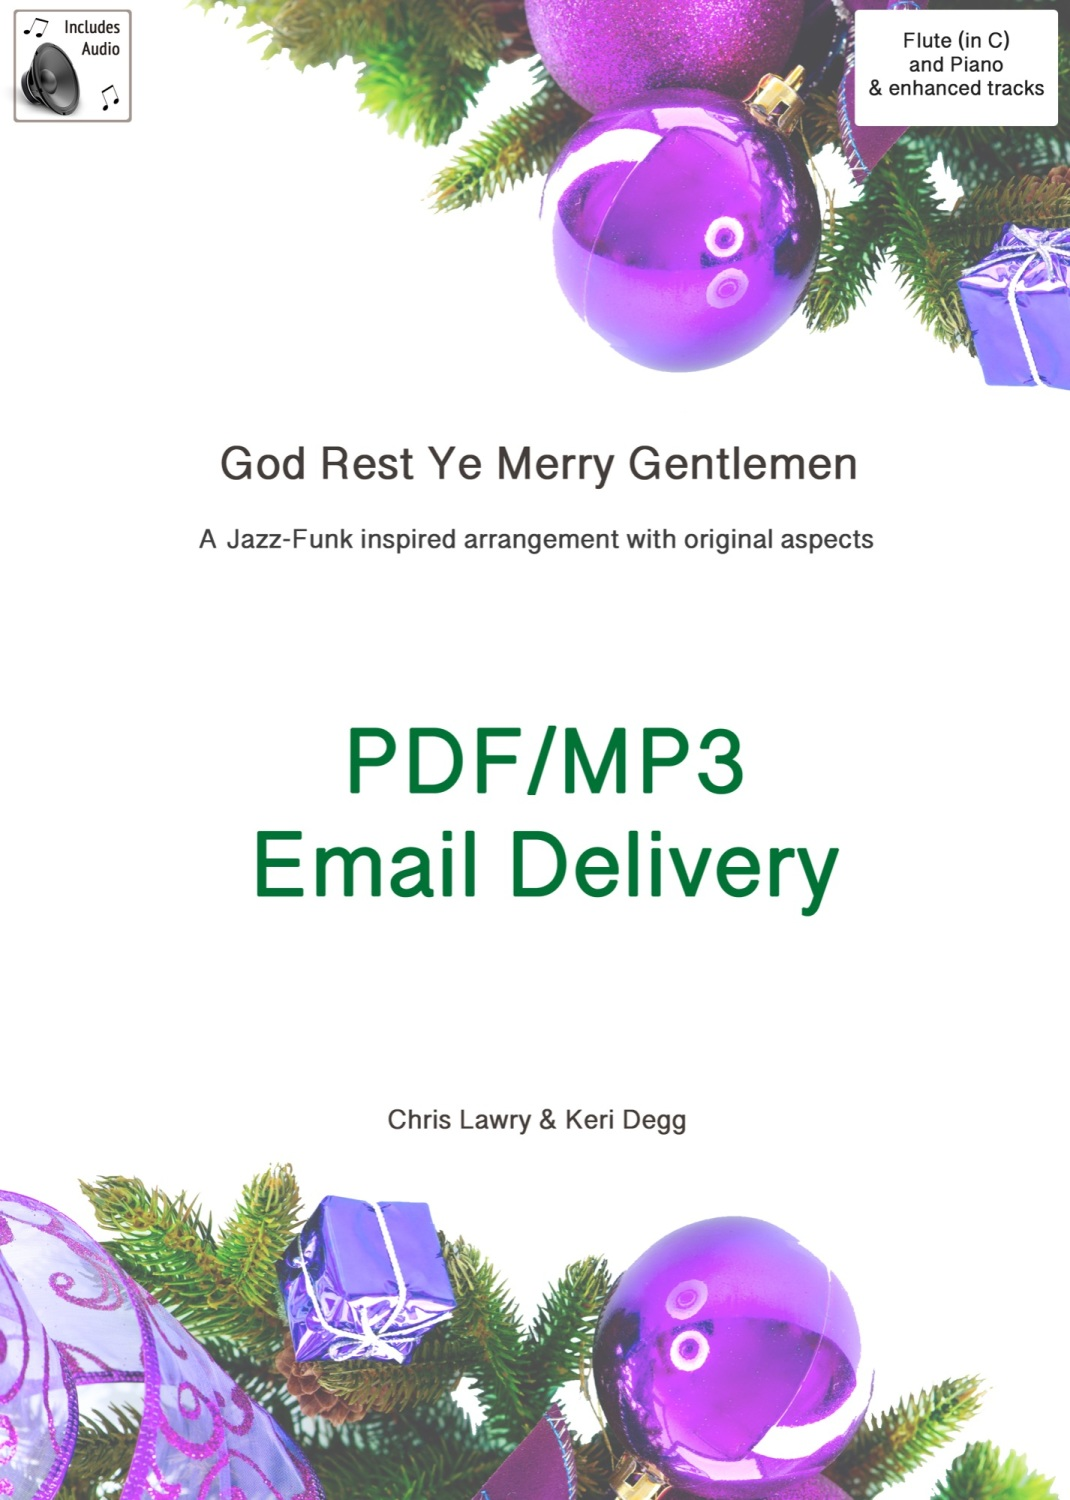 God Rest Ye Merry Gentlemen Jazz inspired arrangement Flute & Piano. PDF/MP